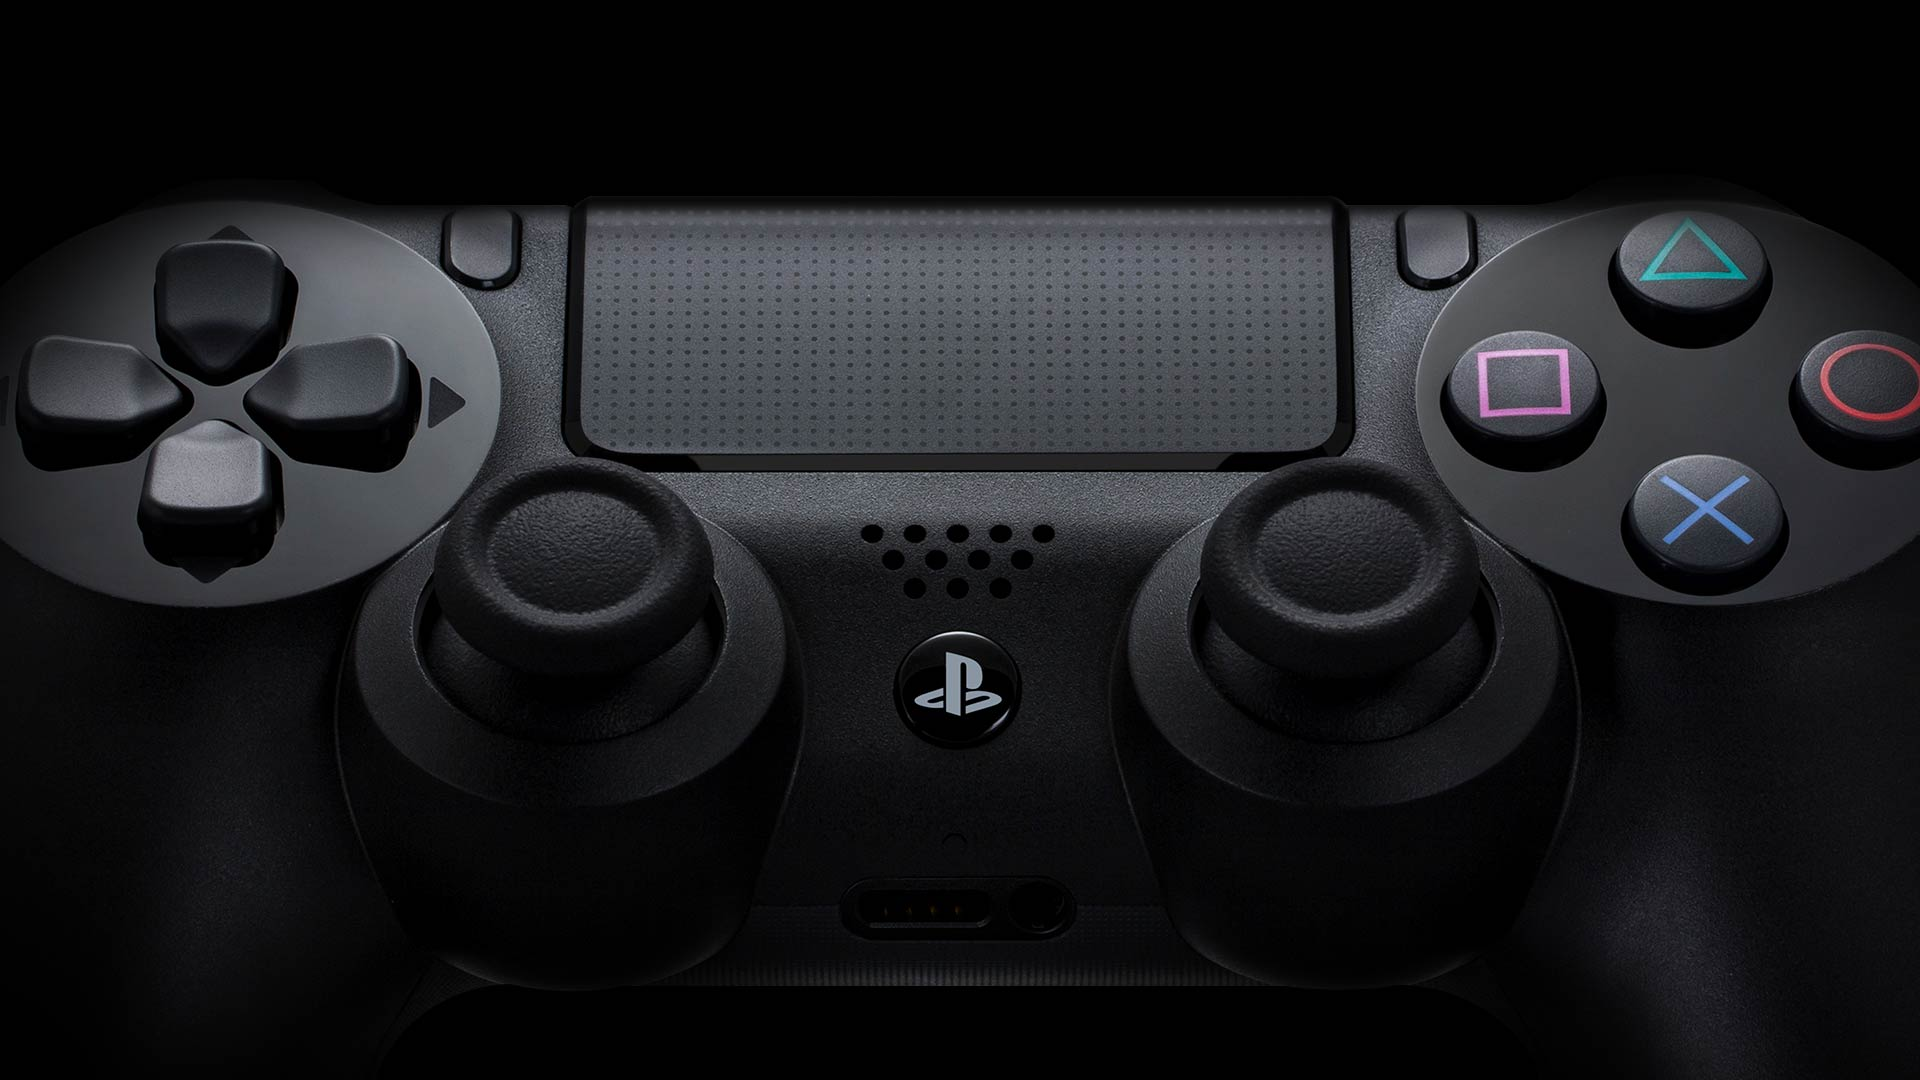 Ps4 Controller Wallpaper